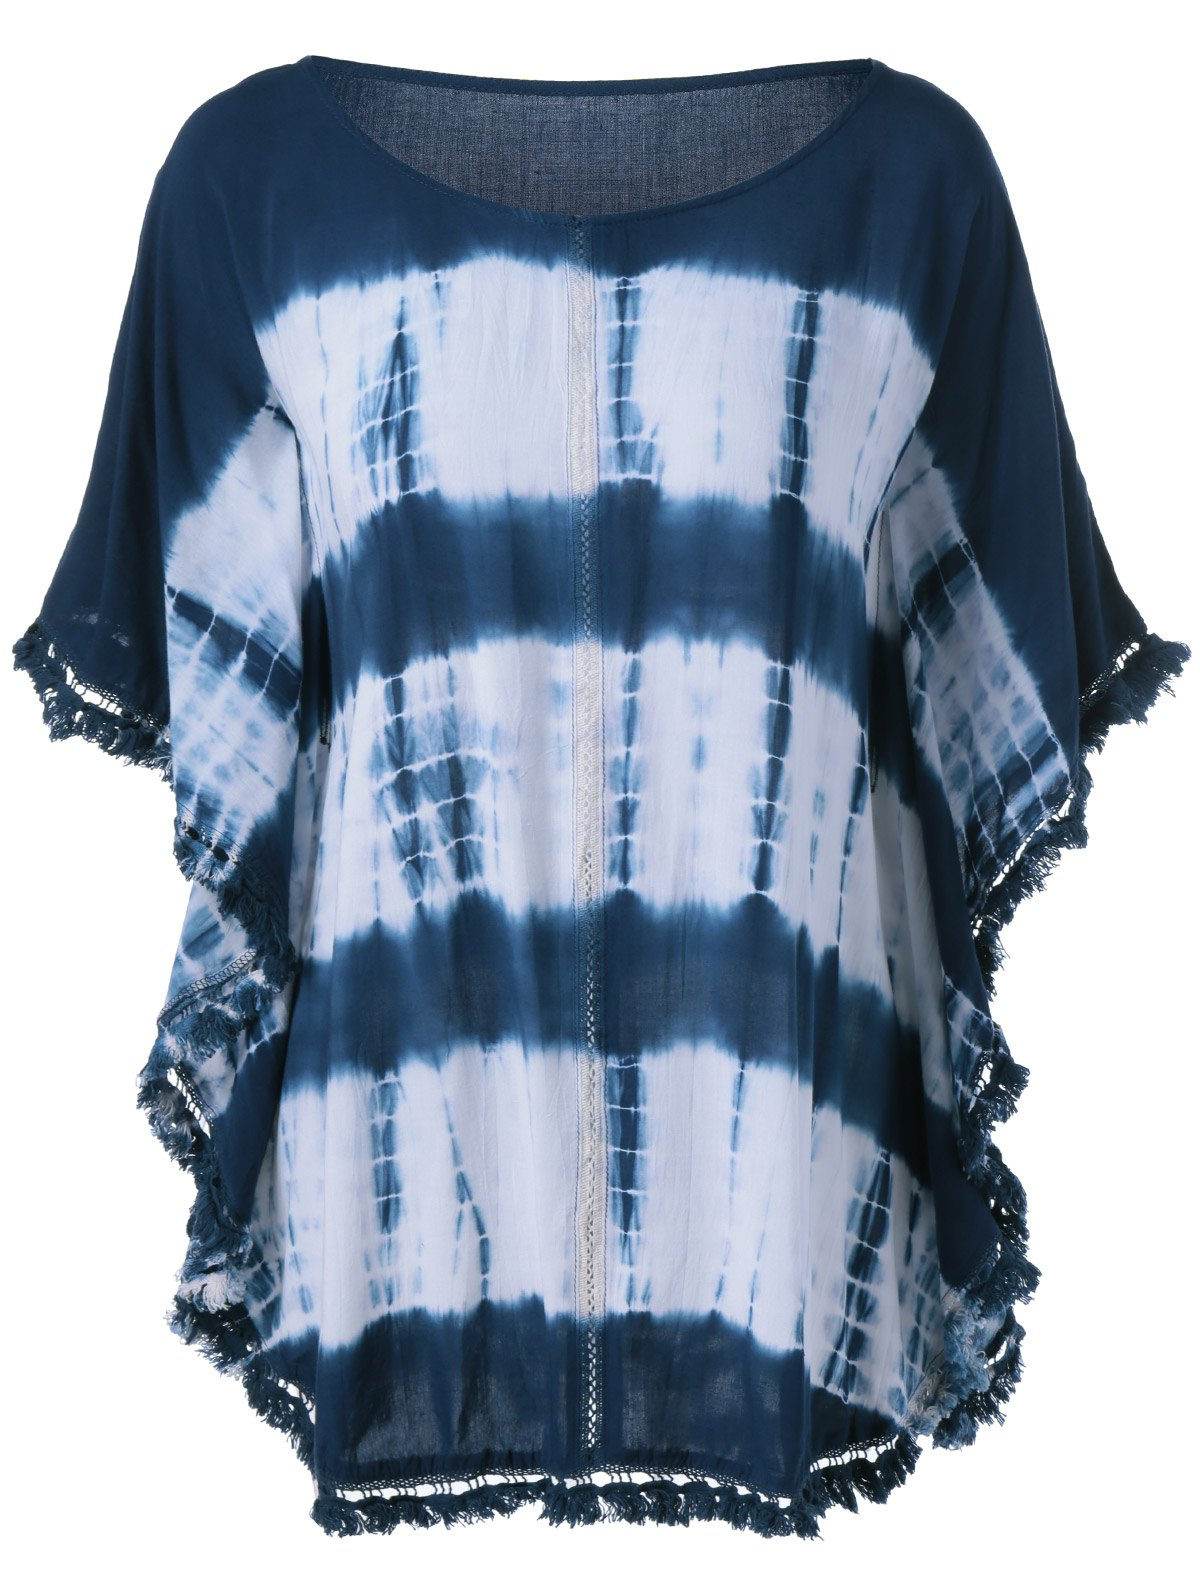 Fringed Bat Sleeve Tie-Dye T-Shirt - COLORMIX ONE SIZE